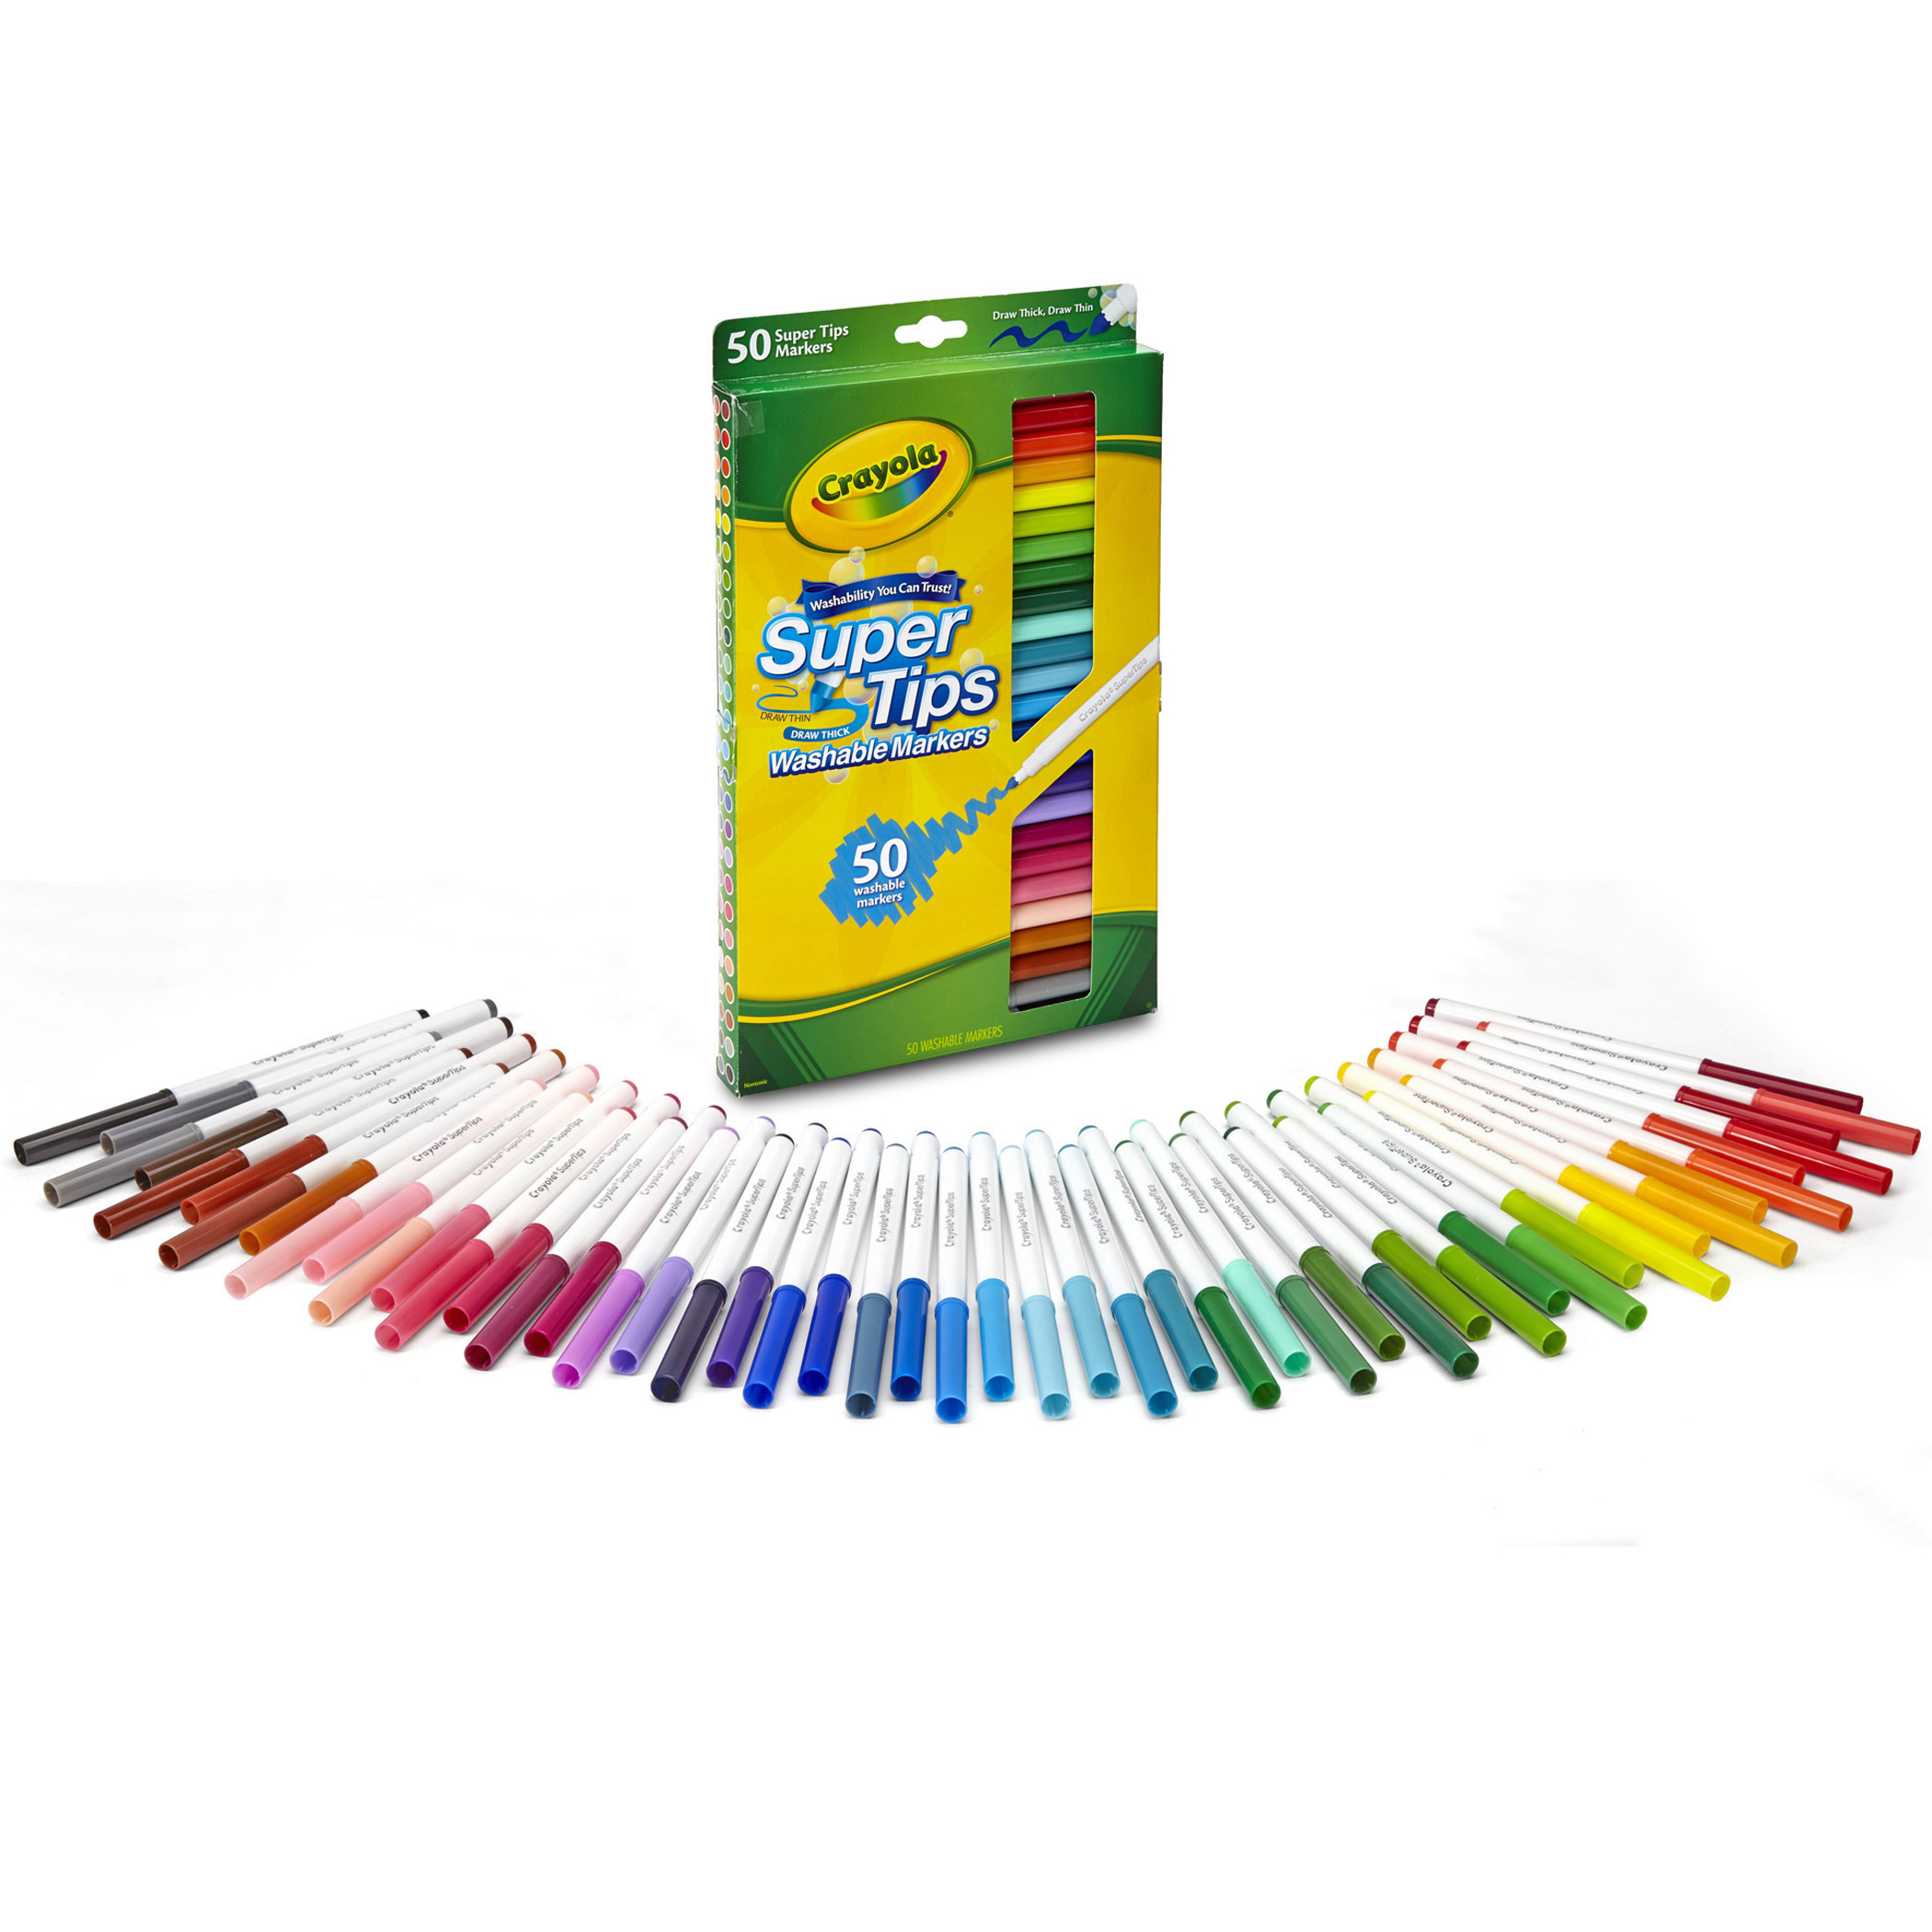 Crayola Super Tips Washable Markers, 15 Count